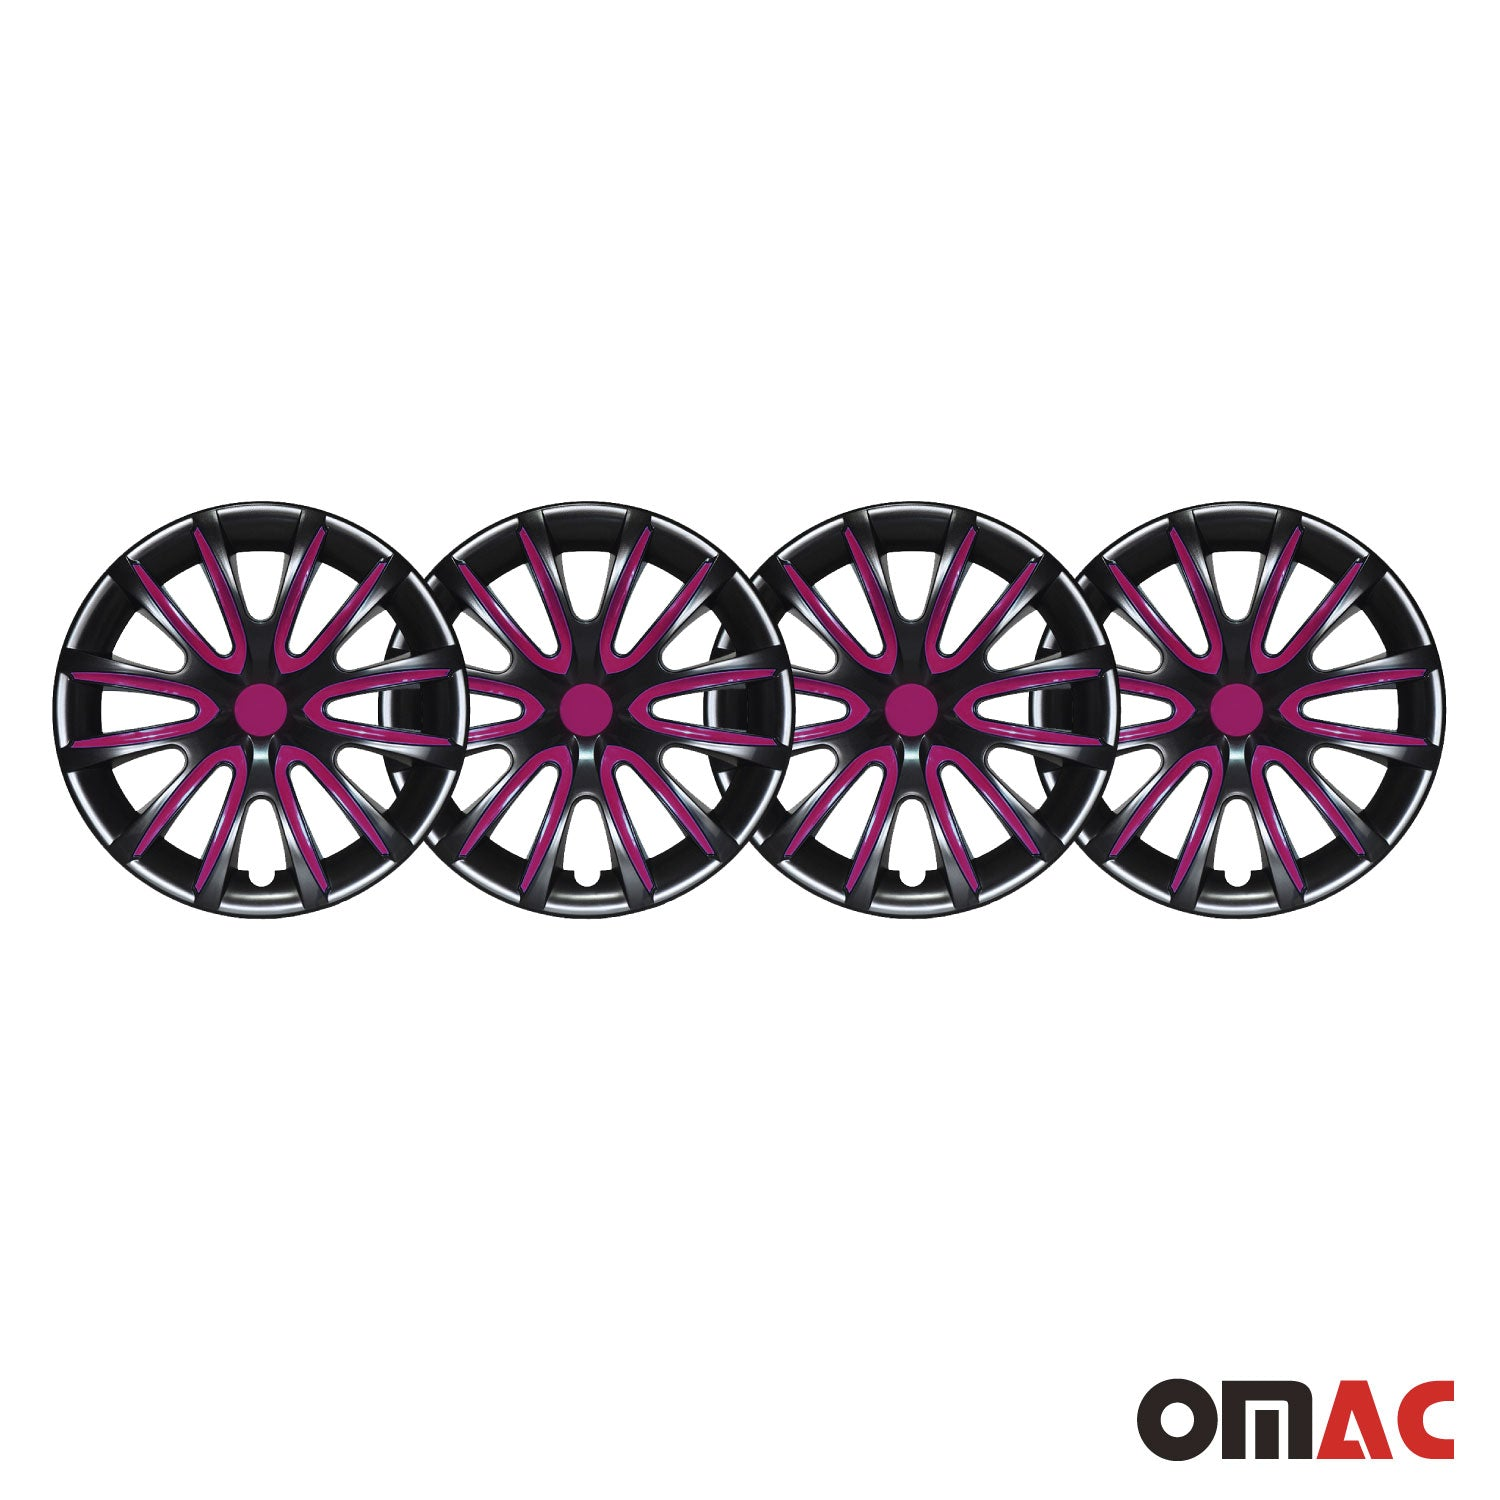 "15"" Inch Hubcaps Wheel Rim Cover Glossy Black with Violet Insert 4pcs Set"